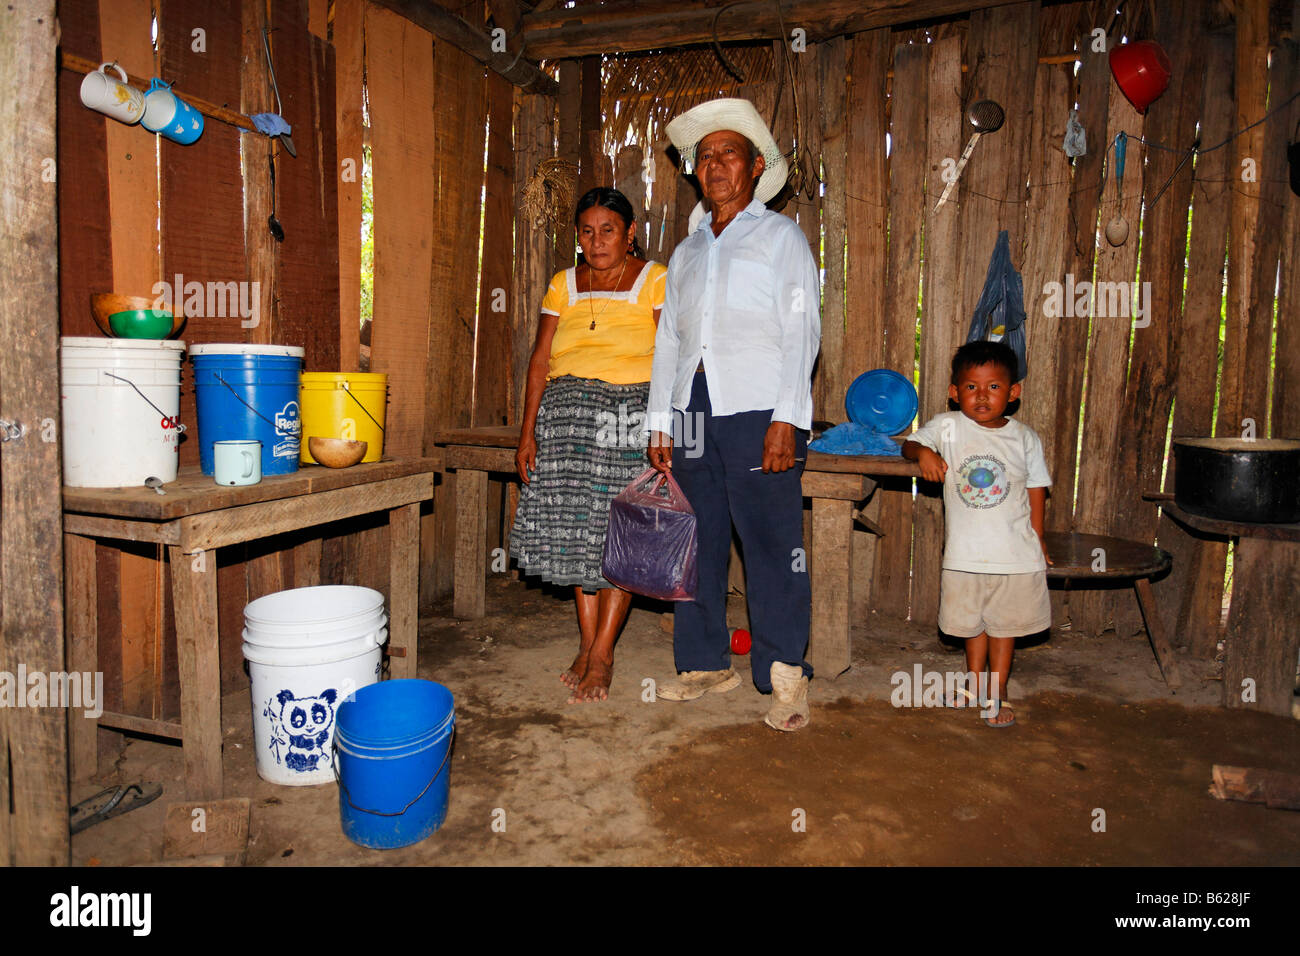 Mayan woman, man, small boy, one-room flat, plastic bucket, wooden hovel, Punta Gorda, Belize, Central America Stock Photo